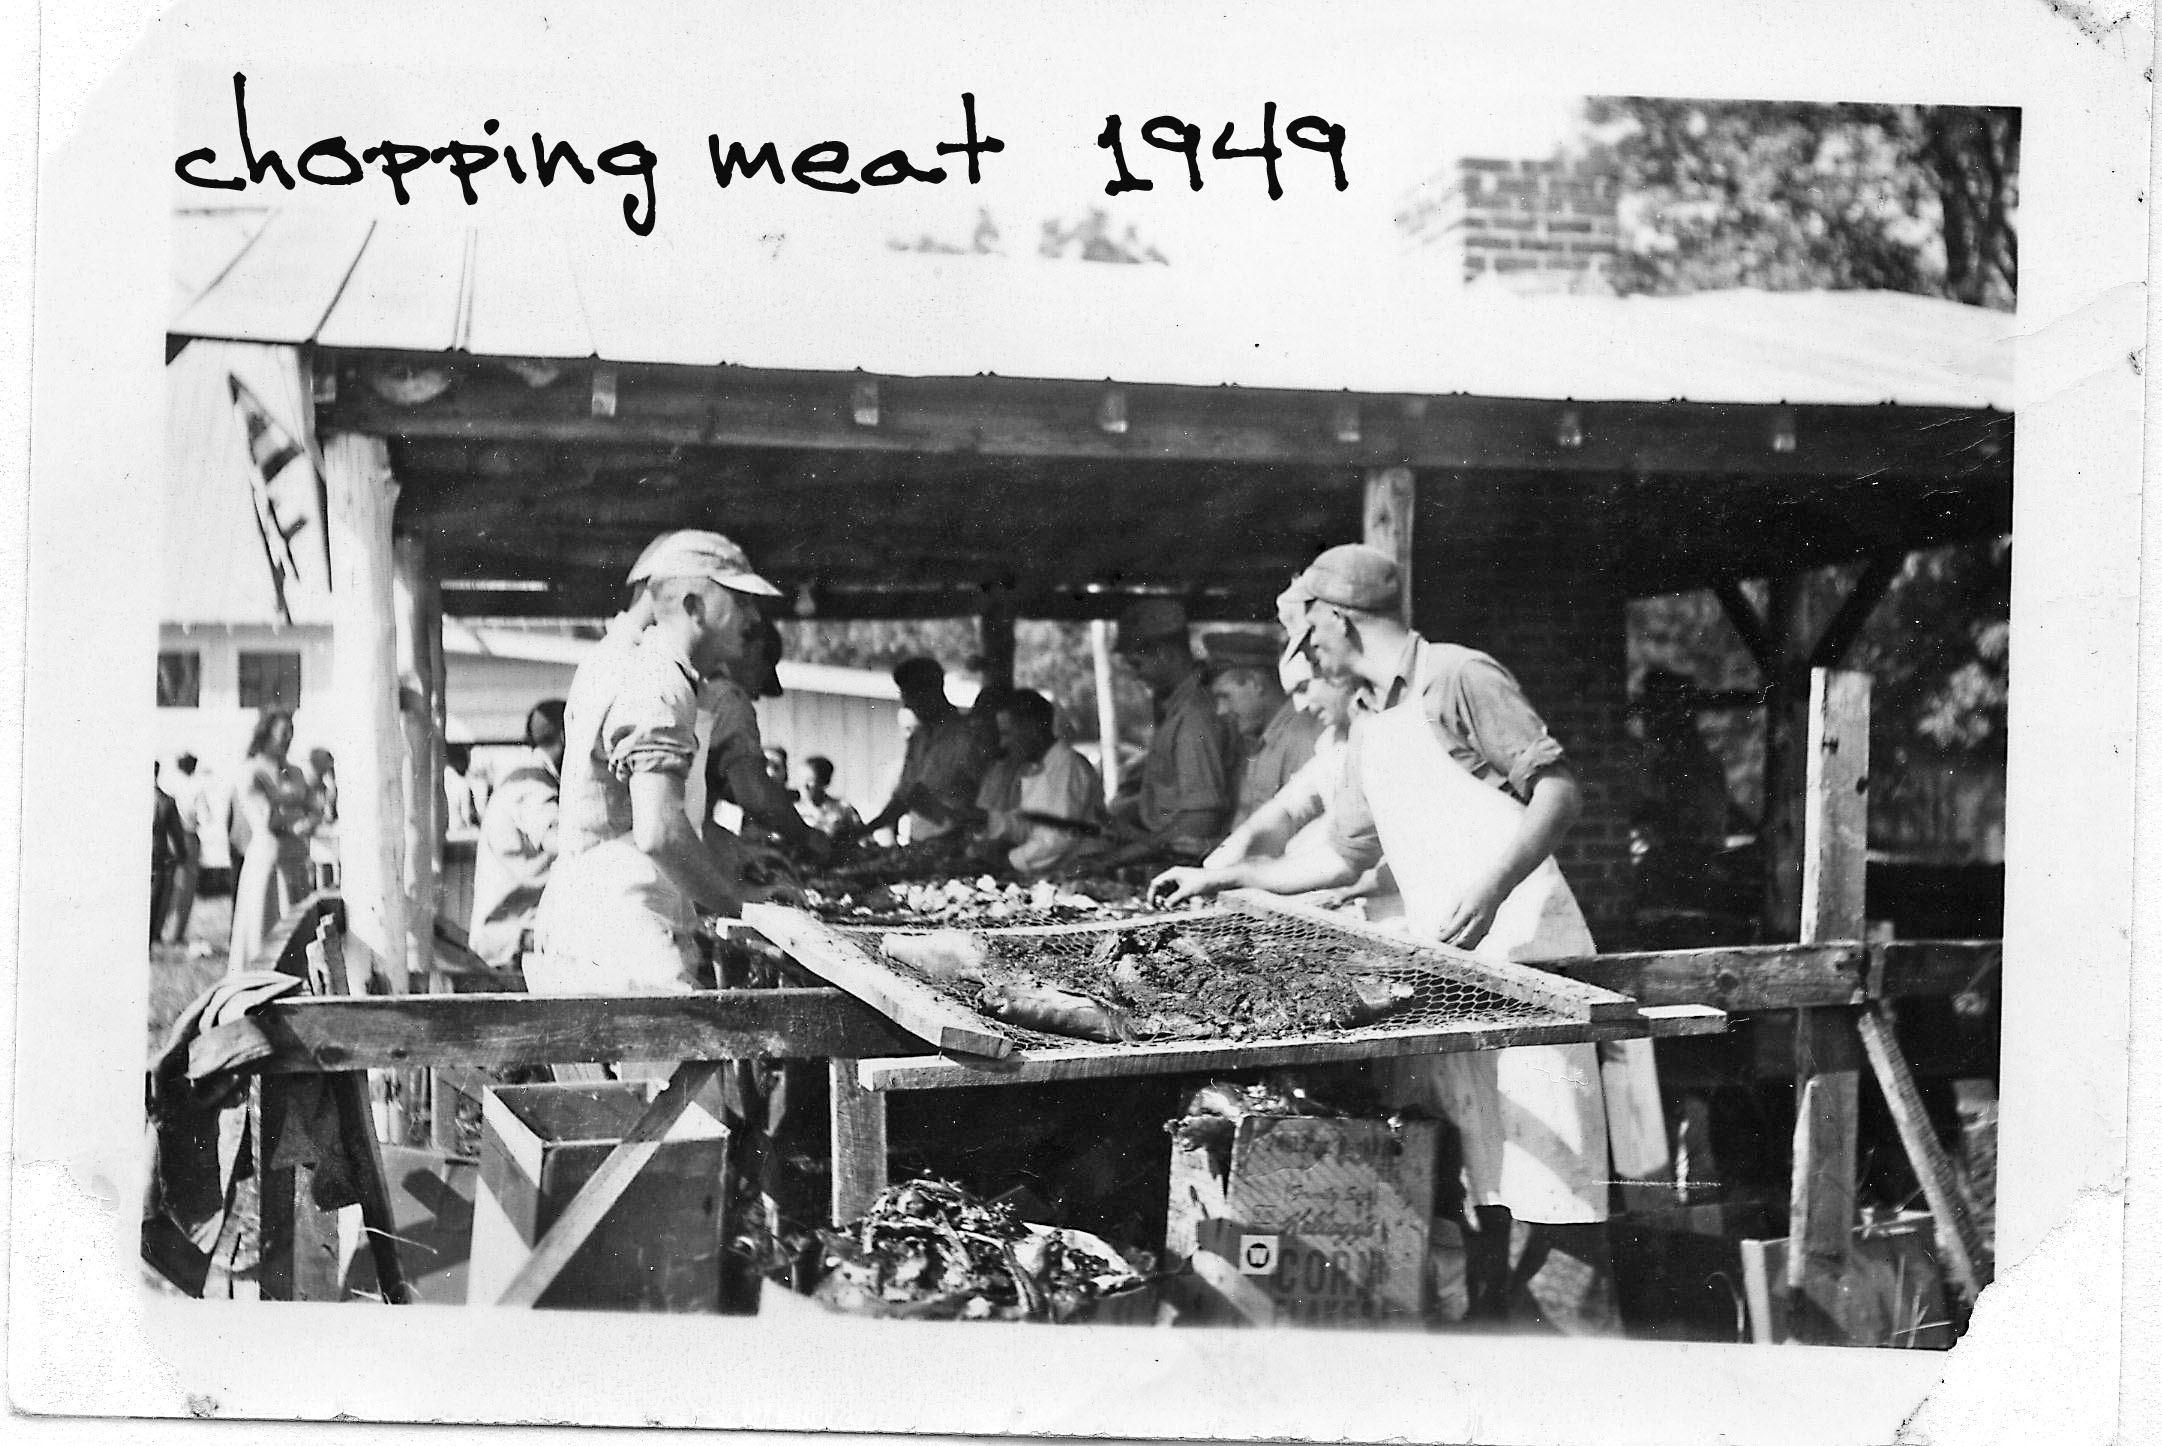 chopping meat 1949